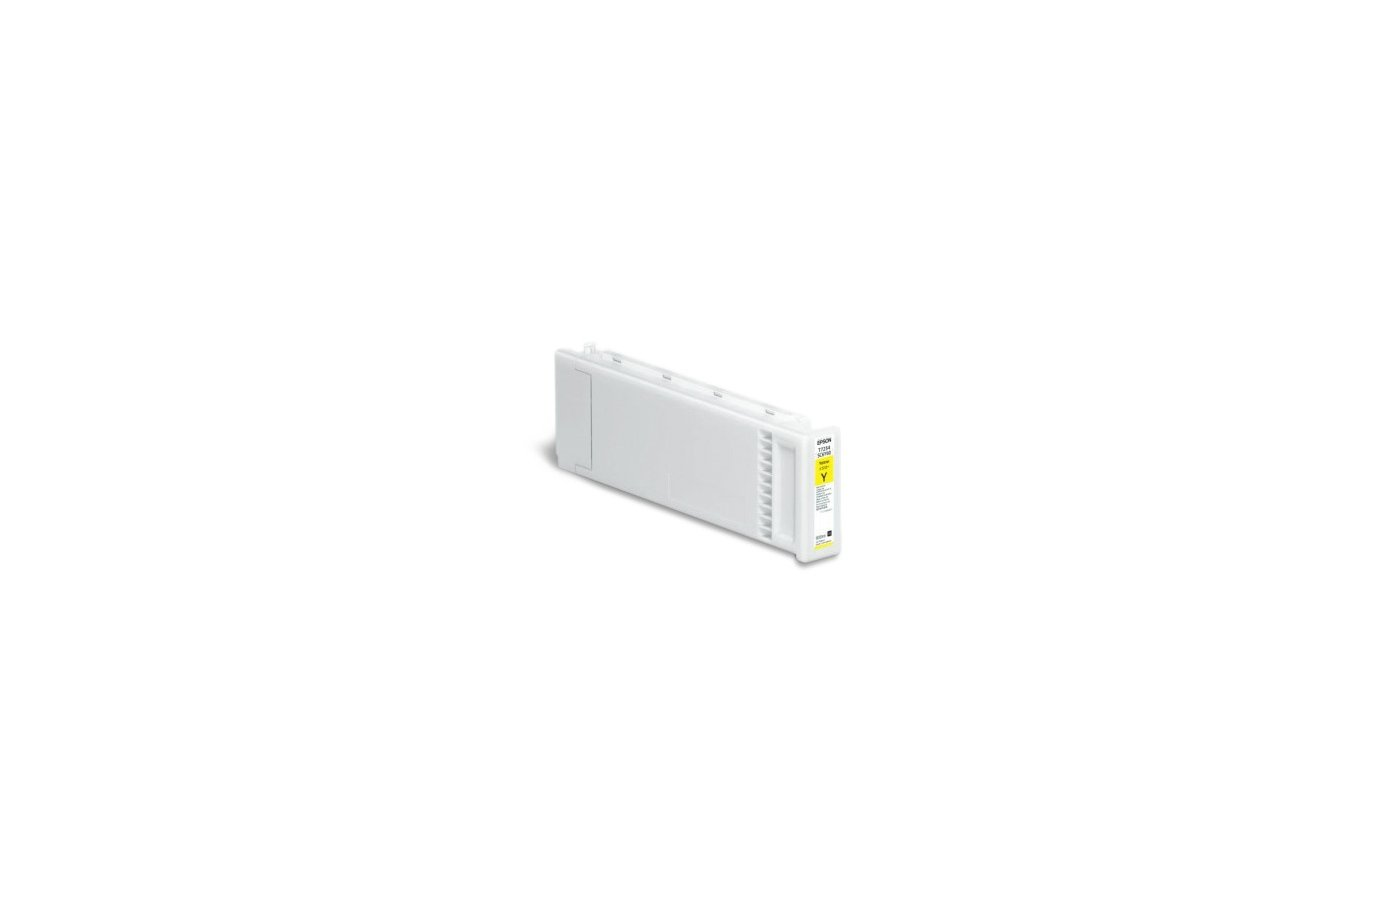 Картридж струйный Epson C13T725400 картридж UltraChrome DG Yellow желтый